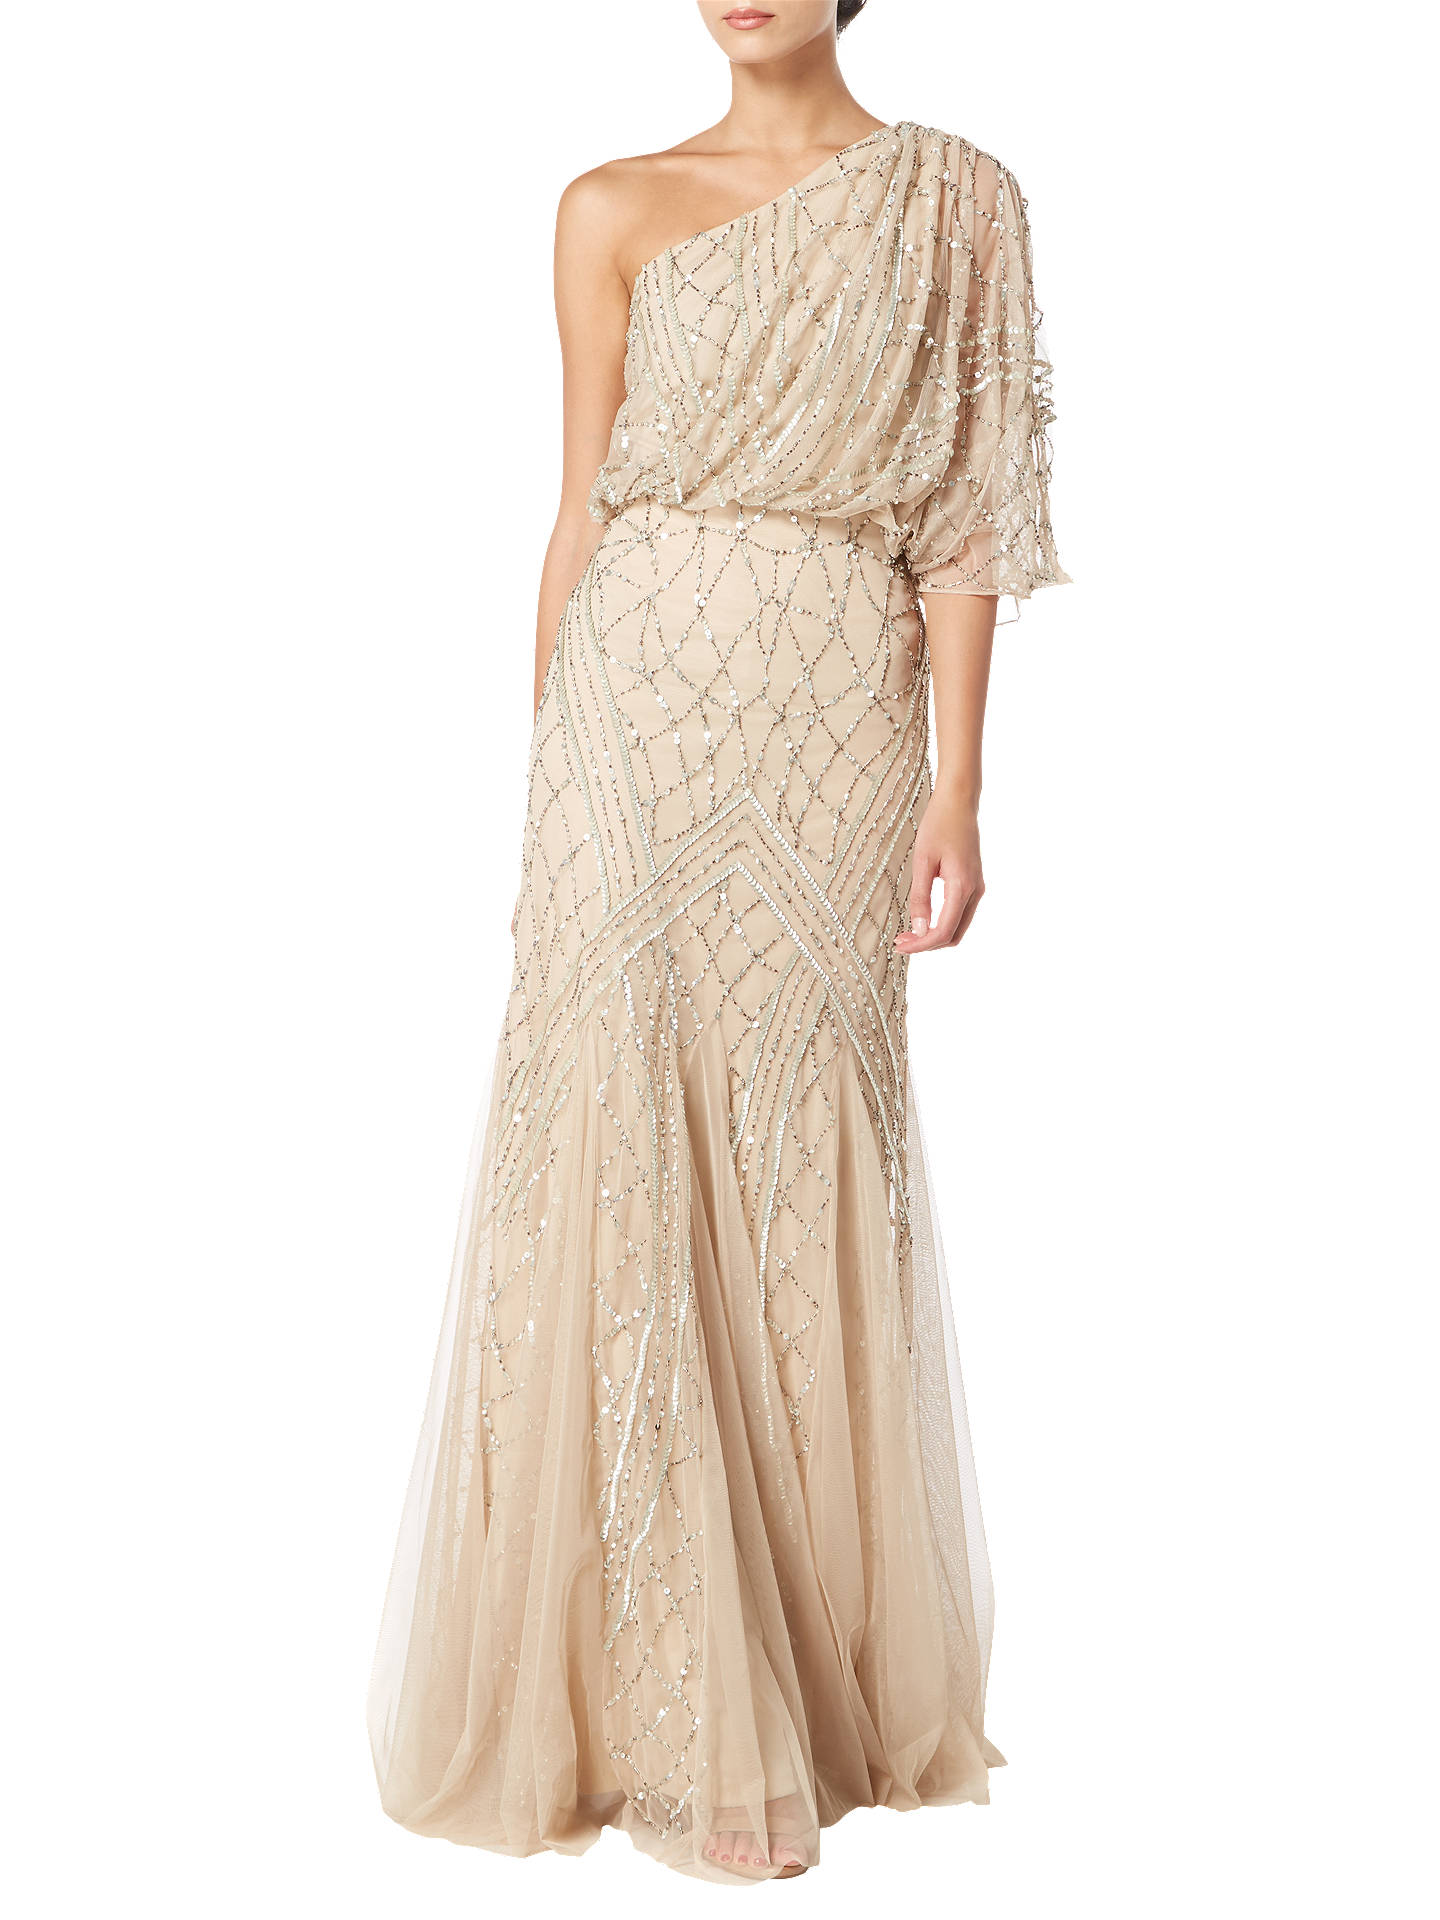 BuyRaishma One Shoulder Draped Dress, Champagne, 8 Online at johnlewis.com